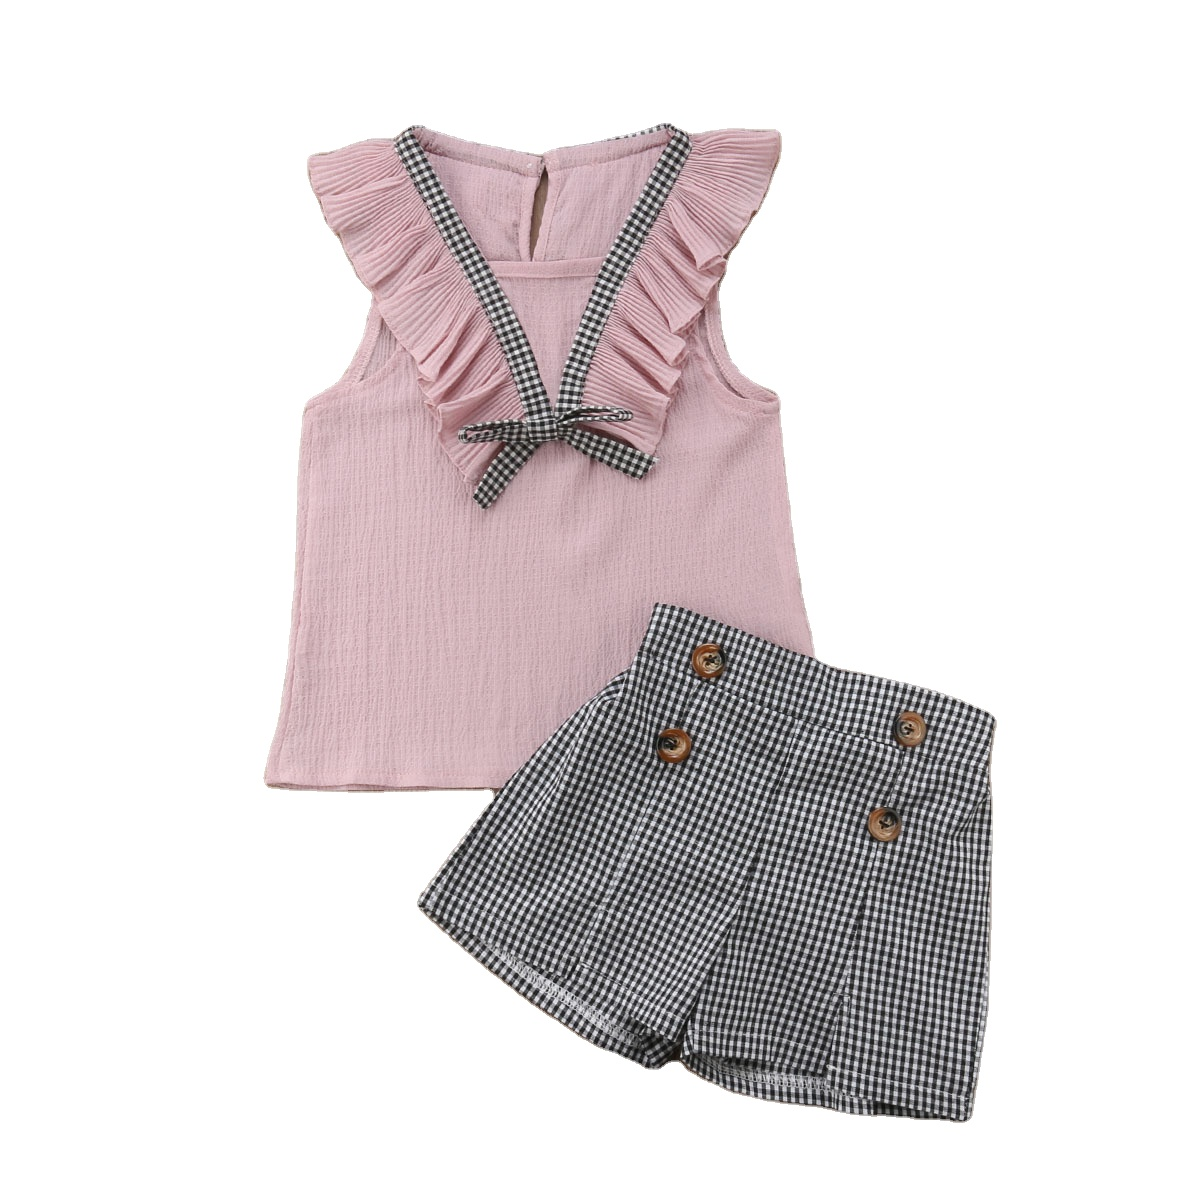 Conjunto De Ropa De Verano Para Ninas Chaleco Pantalones Cortos A Cuadros Trajes Para Ninas De 6 7 10 11 12 Y 14 Anos 2 Uds 2020 Buy Kids Wears Girls Children S Clothing Baby Girl Clothes Sets Product On